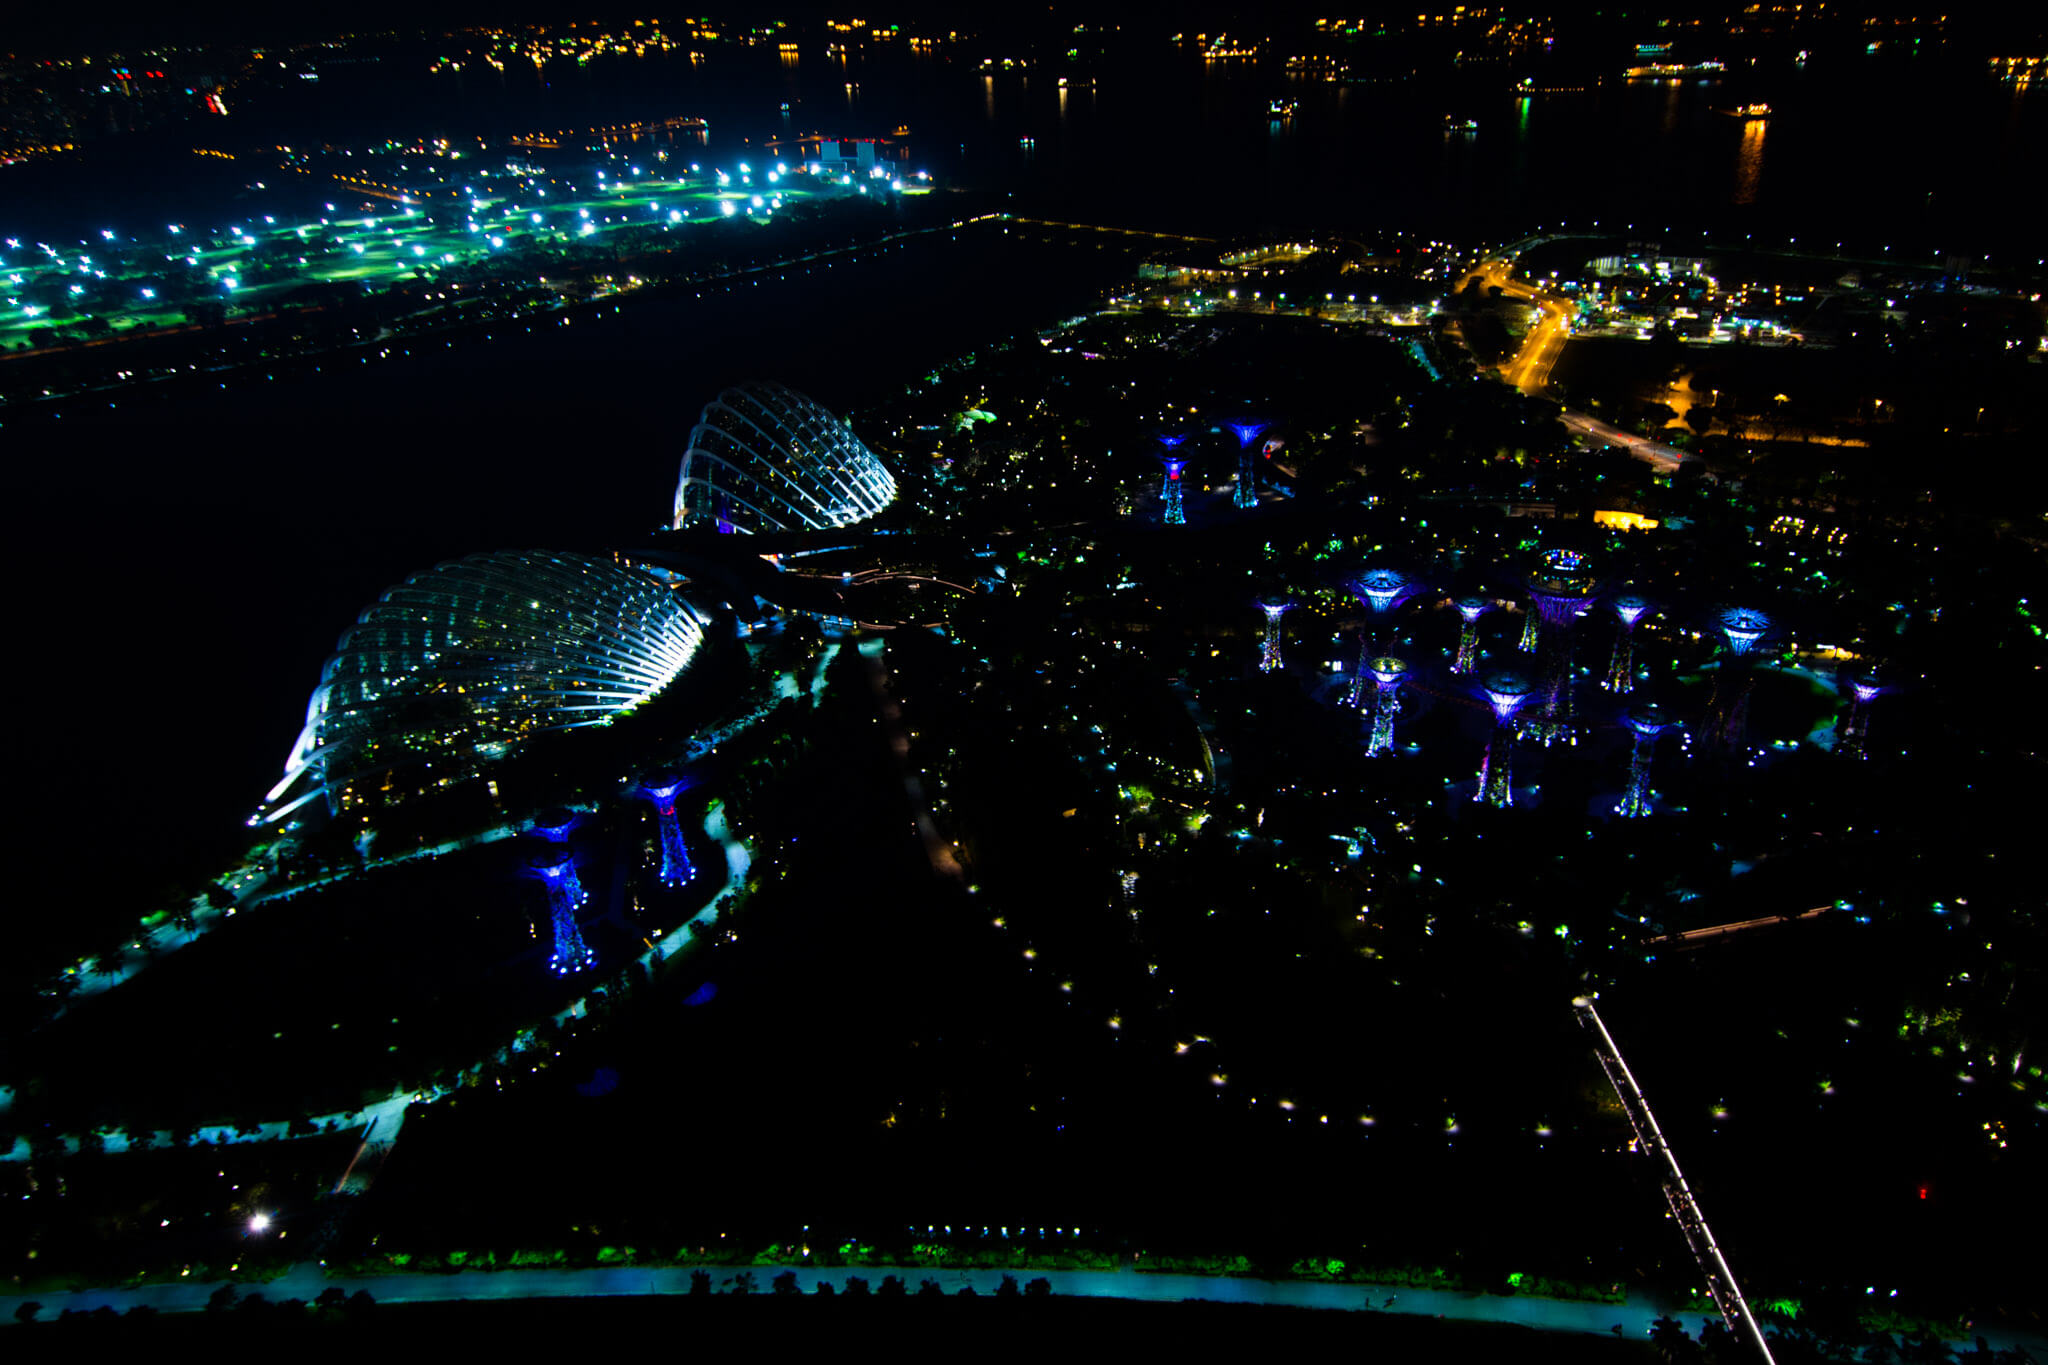 The view from the top of the Marina Bay Sands